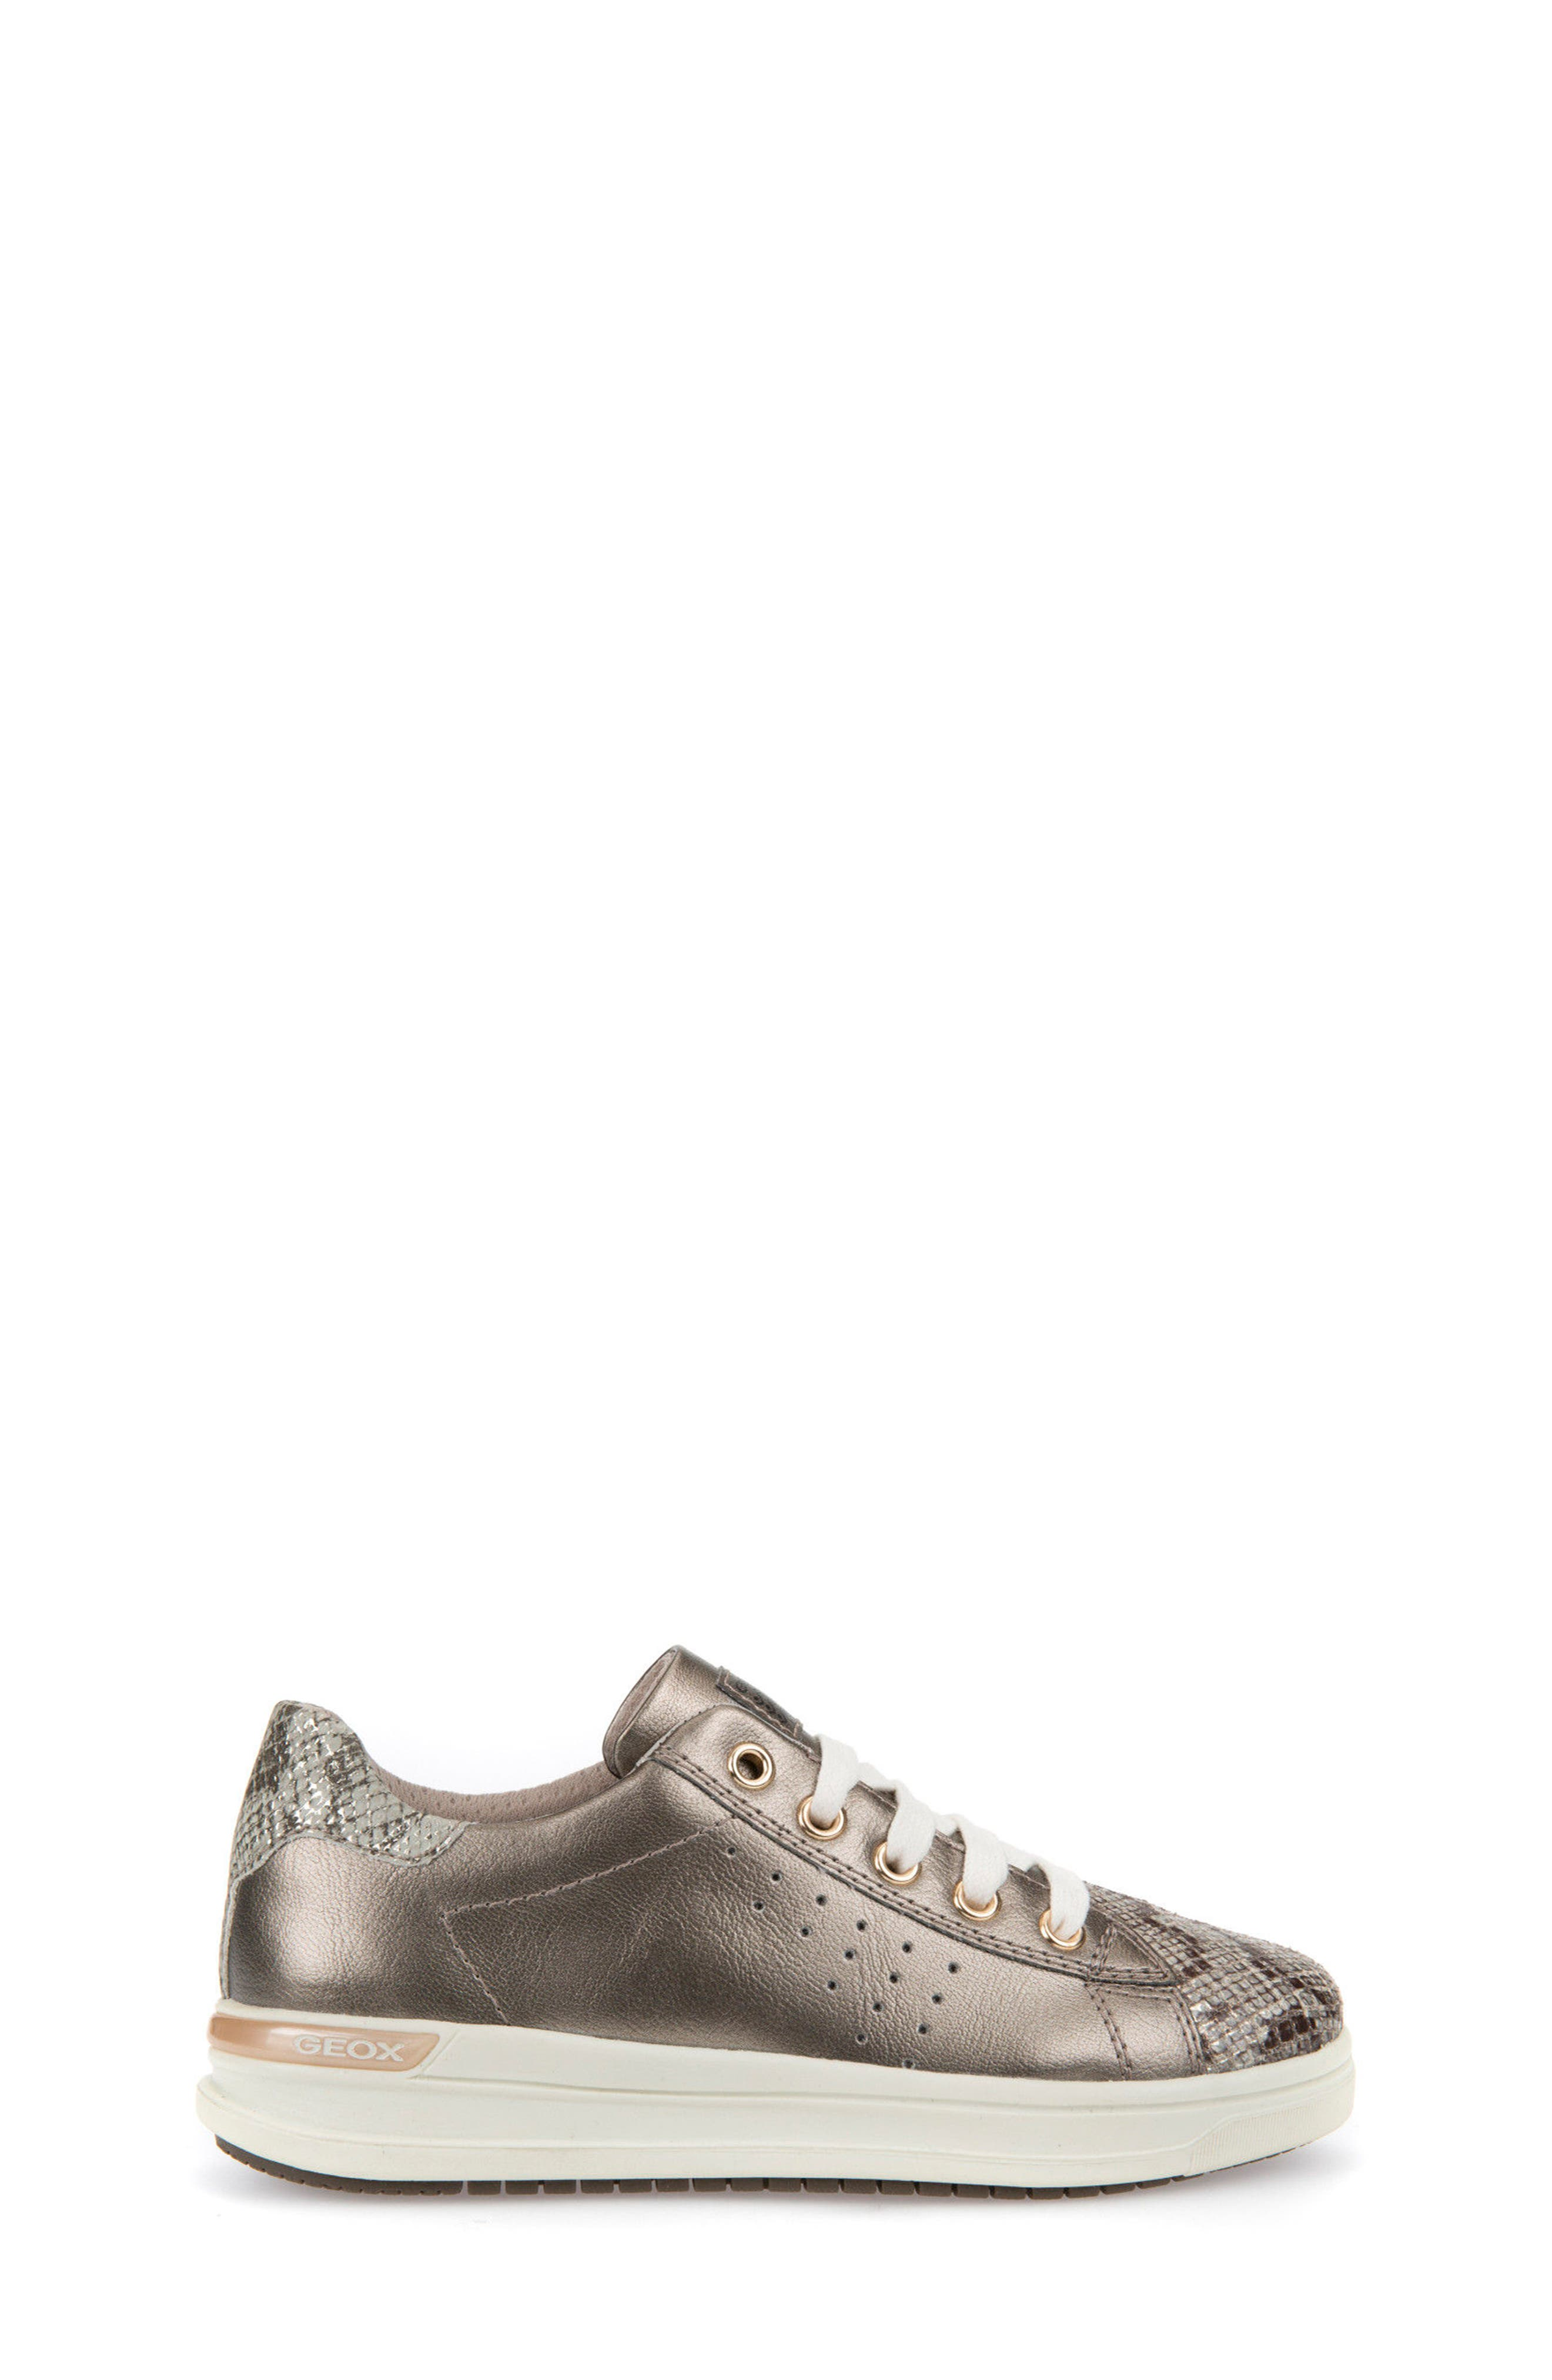 Cave Up Girl Low Top Sneaker,                             Alternate thumbnail 3, color,                             Gold